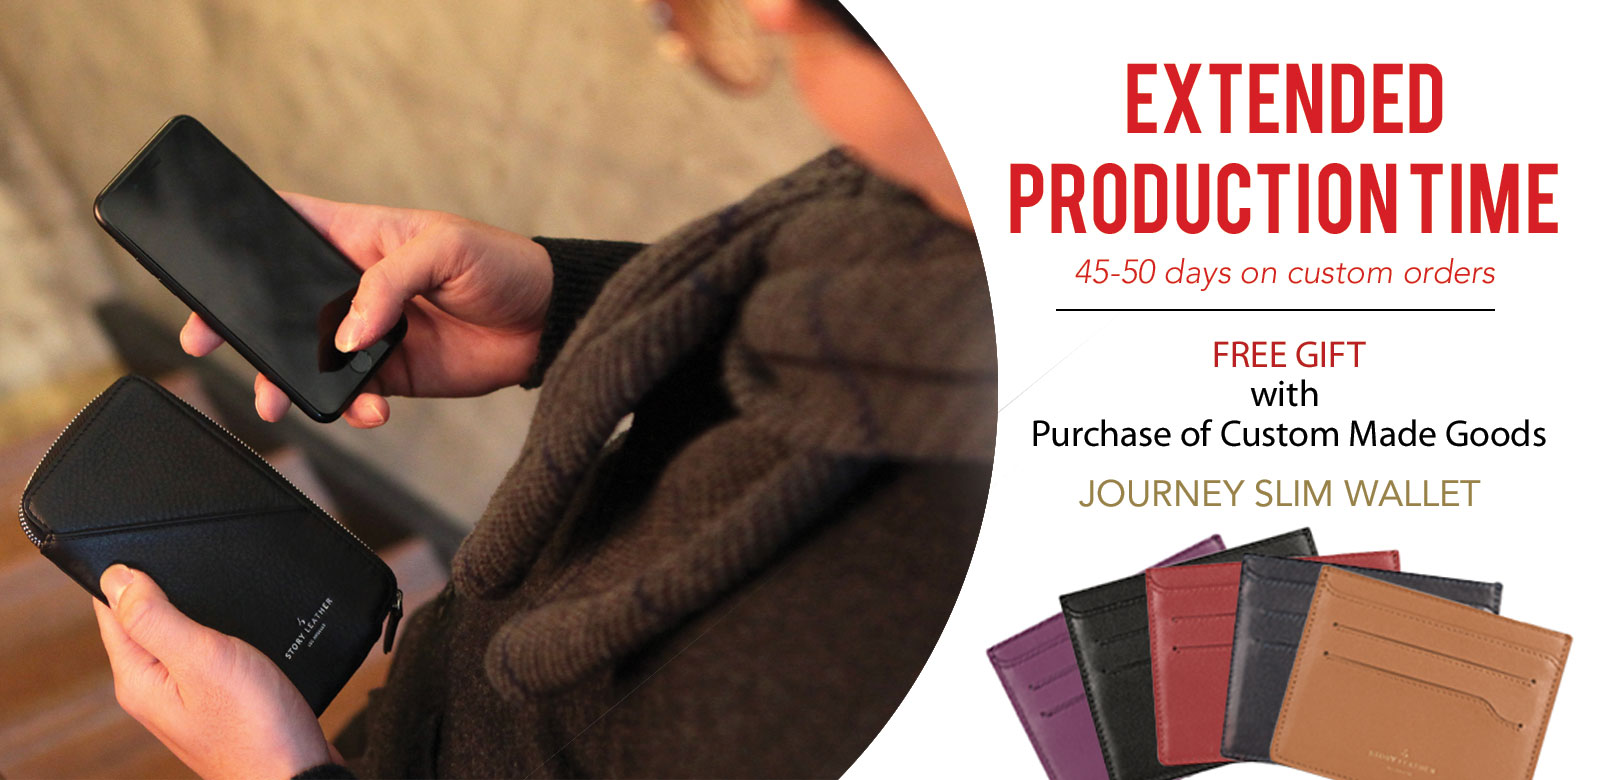 Limited Time Offer - Free Journey Slim Card Wallet with Order of Custom Made Goods